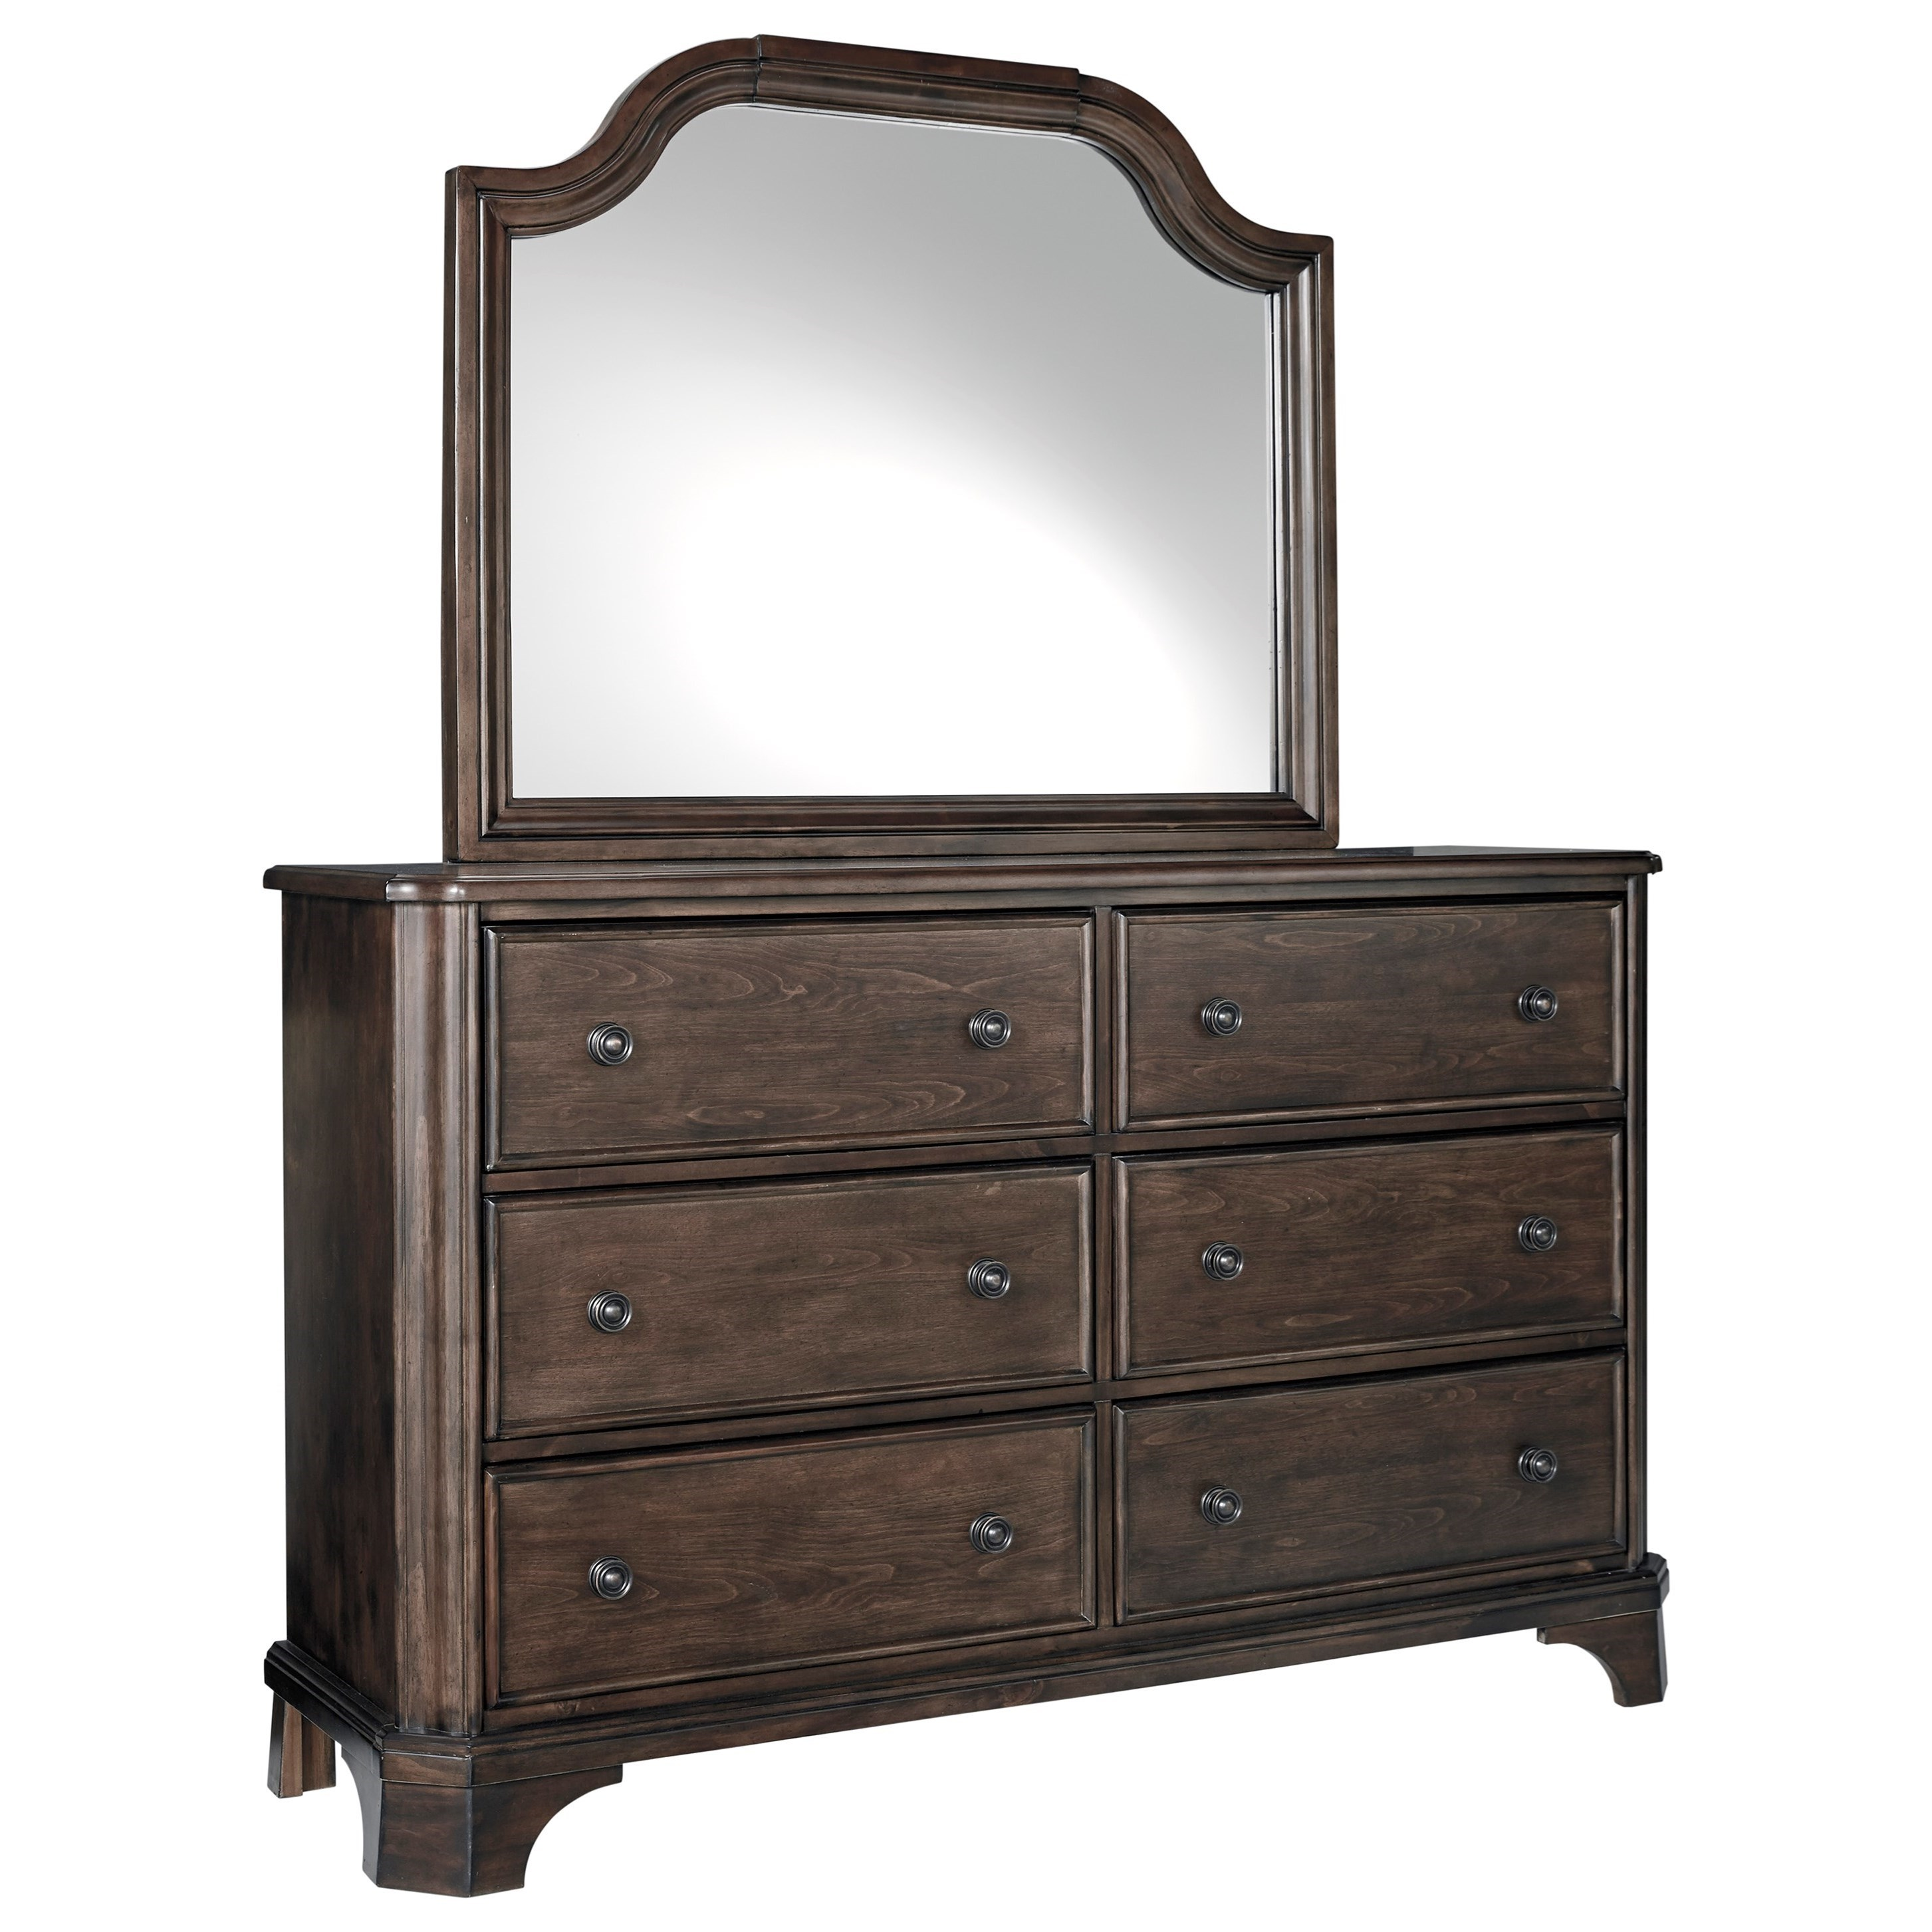 Adinton Dresser and Mirror Set by Signature Design by Ashley at Pilgrim Furniture City